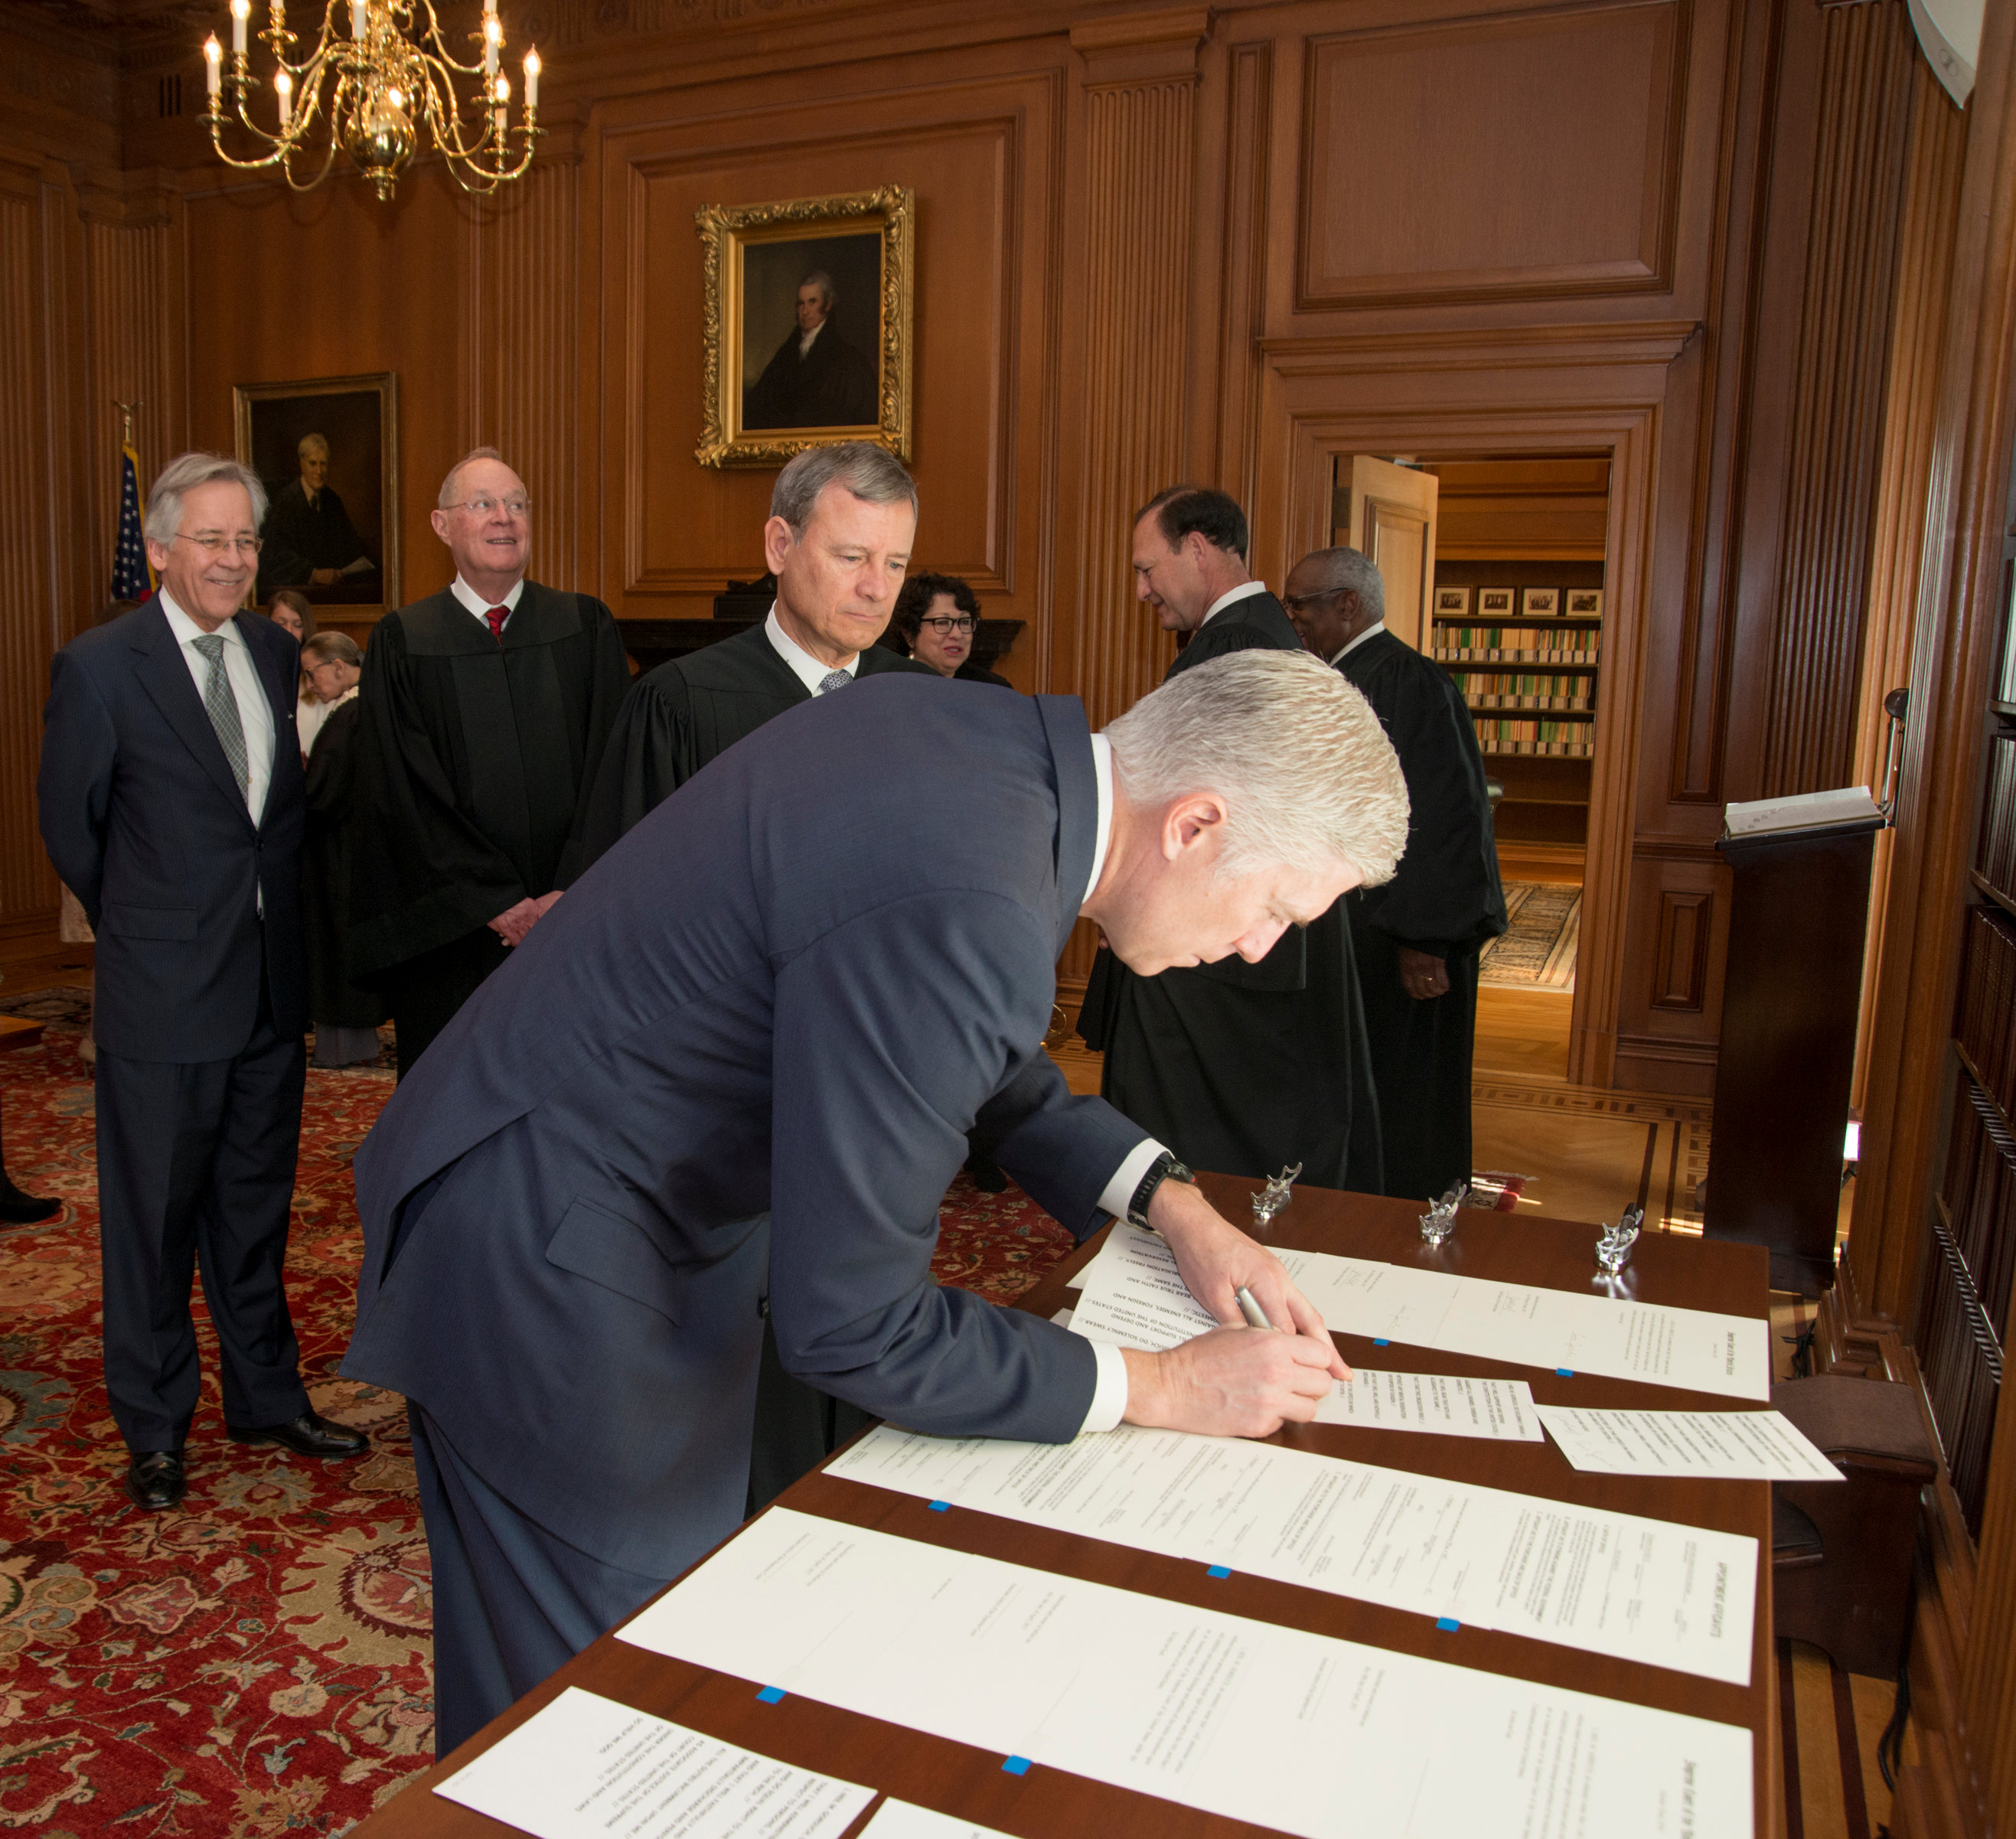 Chief Justice of the United States John Roberts (C) looks on as Judge Neil Gorsuch (R) signs the constitutional oath during swearing-in ceremony at the Supreme Court in Washington, U.S.